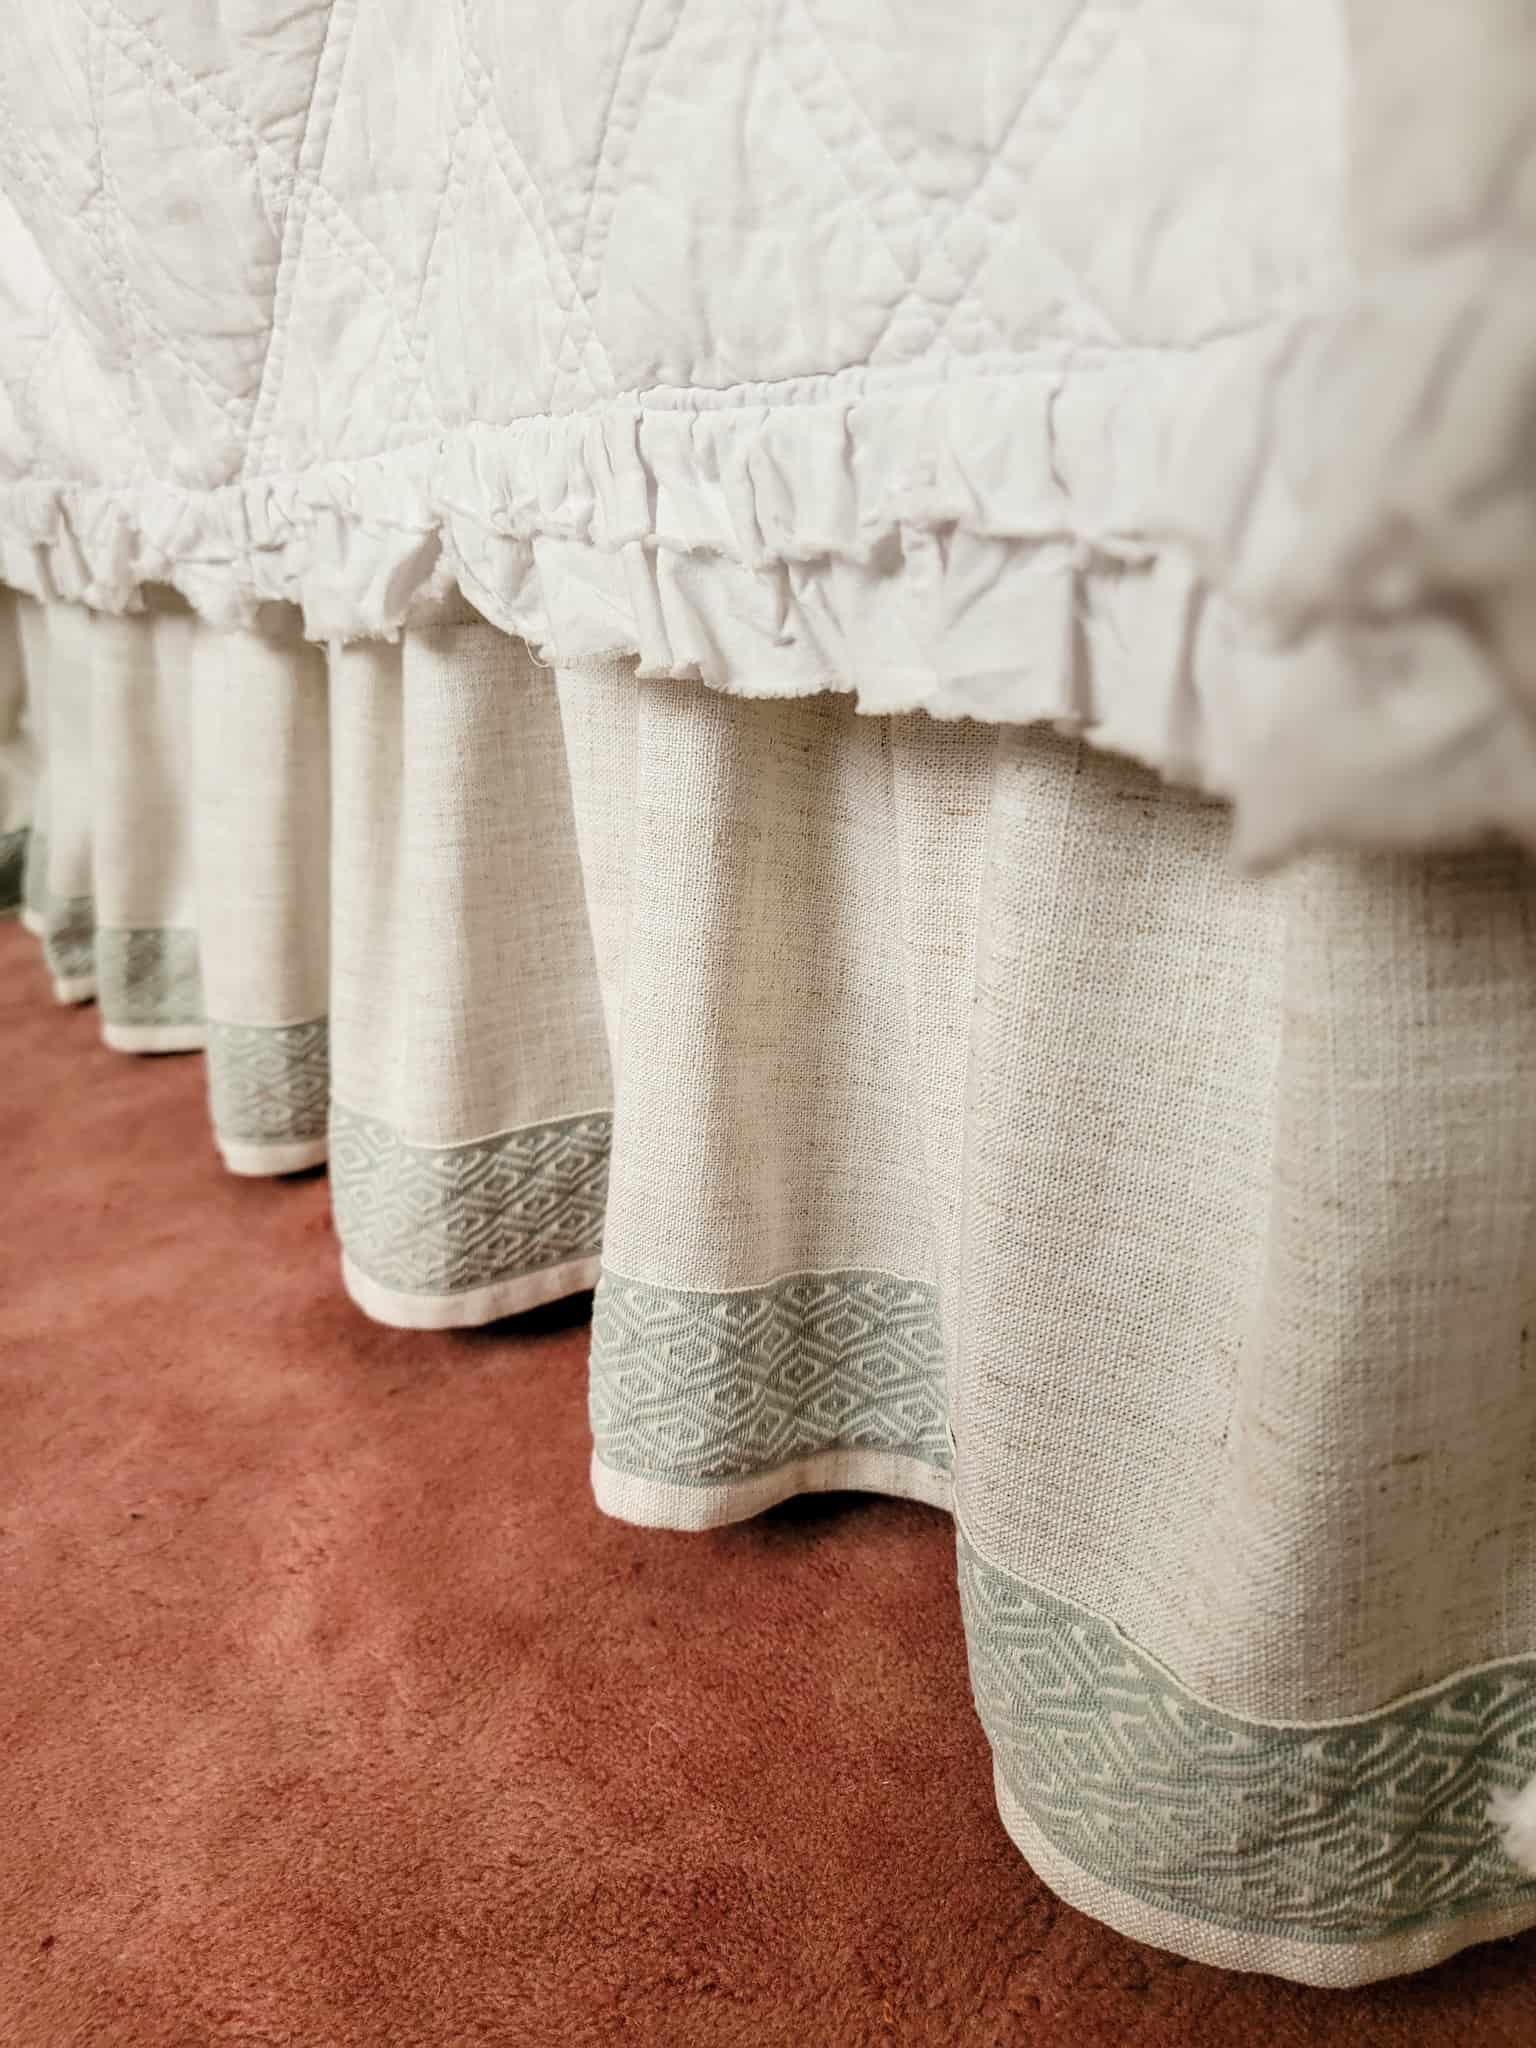 bed skirt with blue decorative trim on top of a pink rug